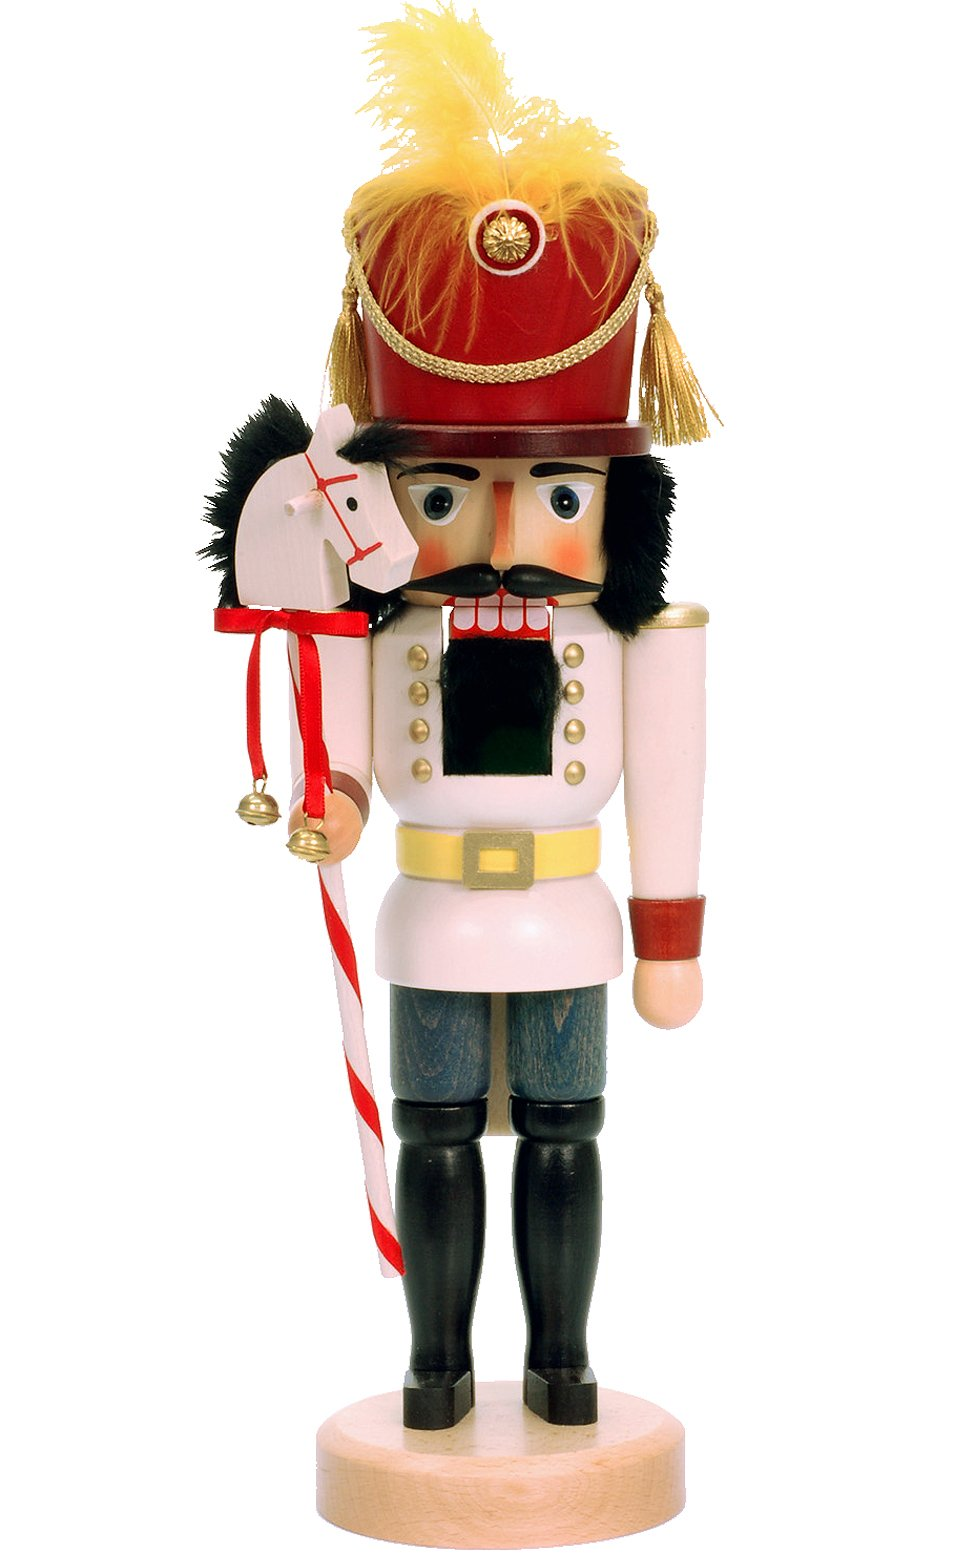 32-539 - Christian Ulbricht Nutcracker - Toy Soldier - 17''''H x 5.5''''W x 7''''D